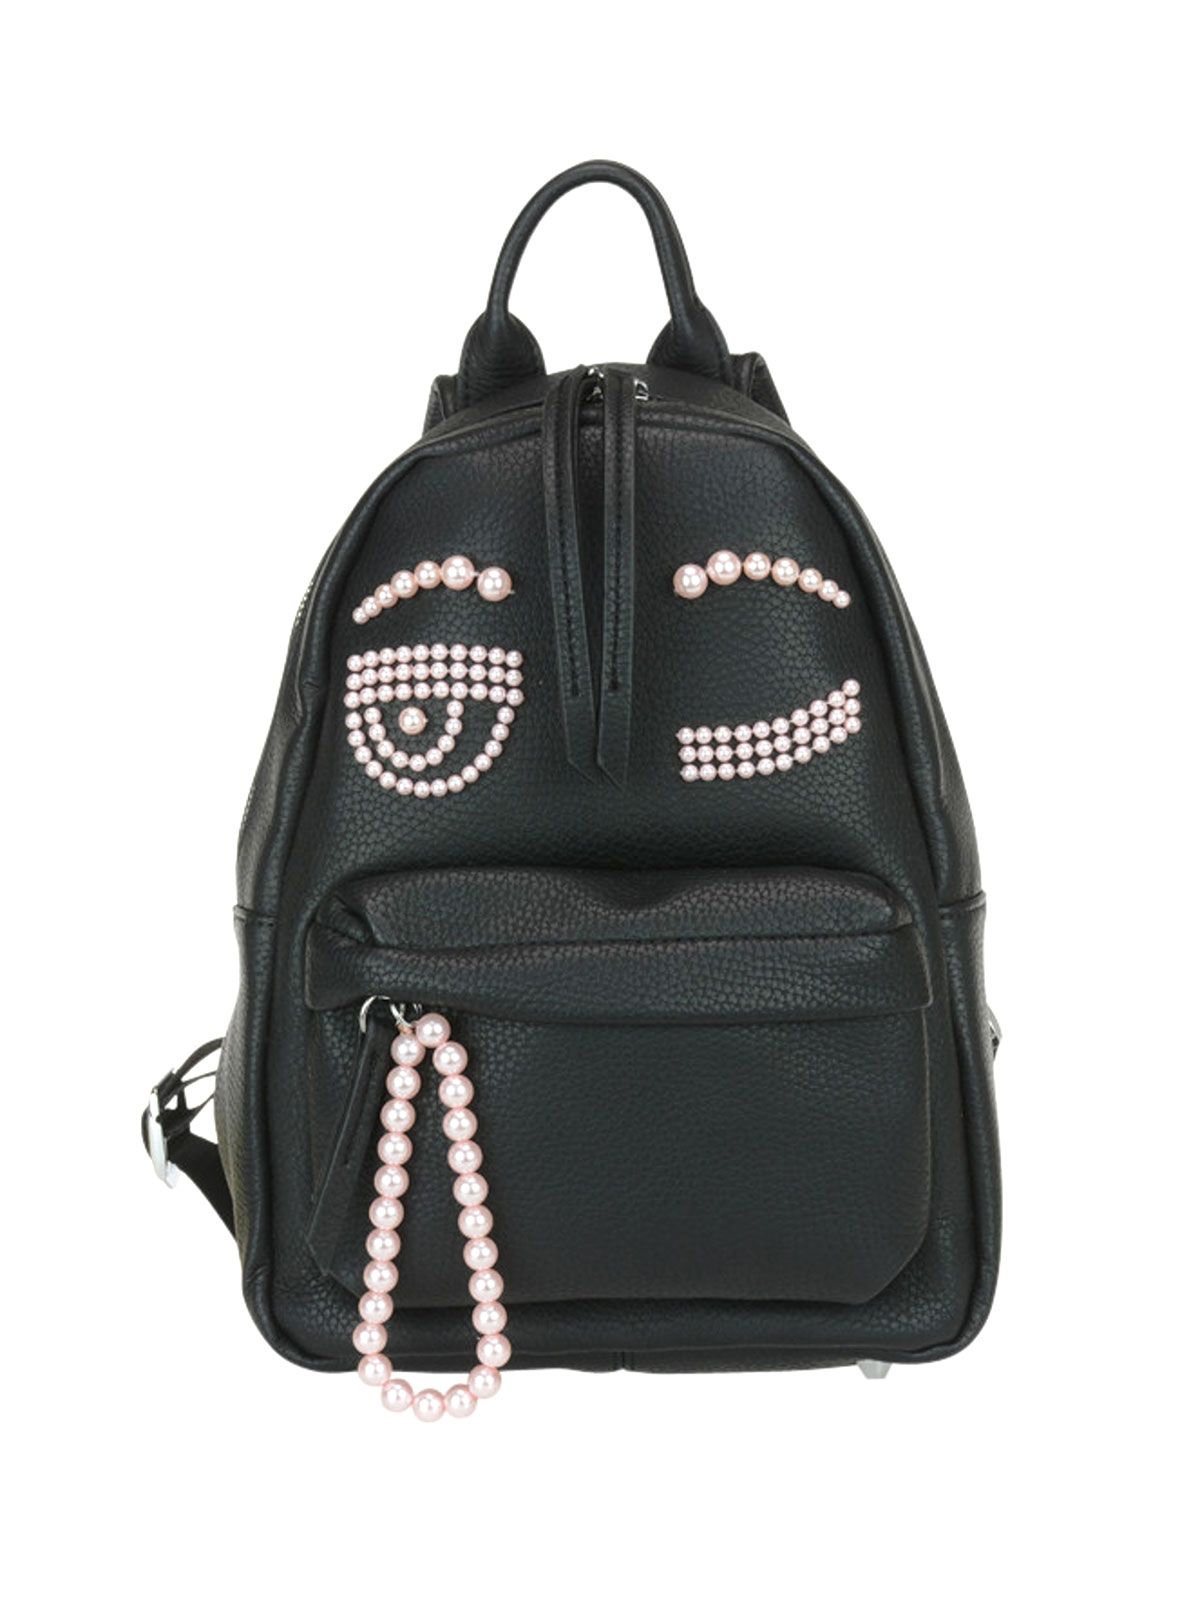 chiara ferragni flirt backpack